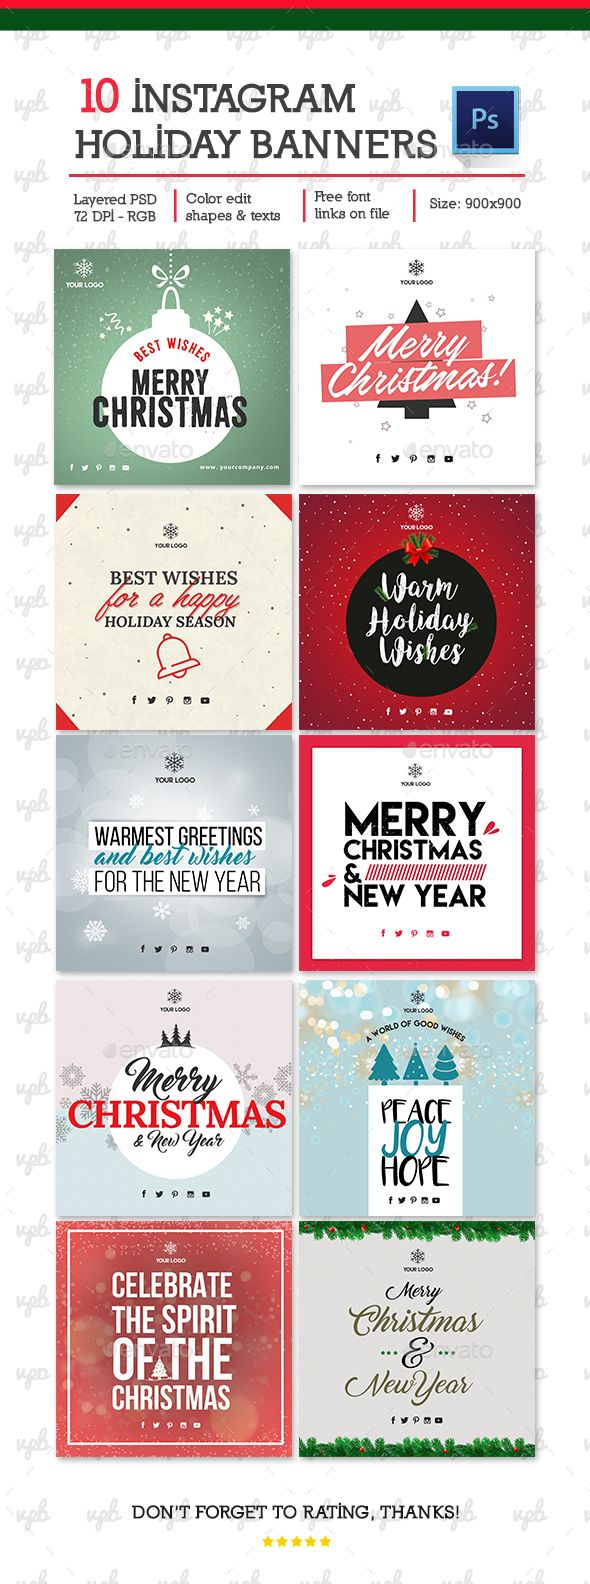 10 Christmas  Holiday Instagram Banners — Photoshop PSD #greetings #post • Download ➝ https://graphicriver.net/item/10-holiday-instagram-banners/19053273?ref=pxcr